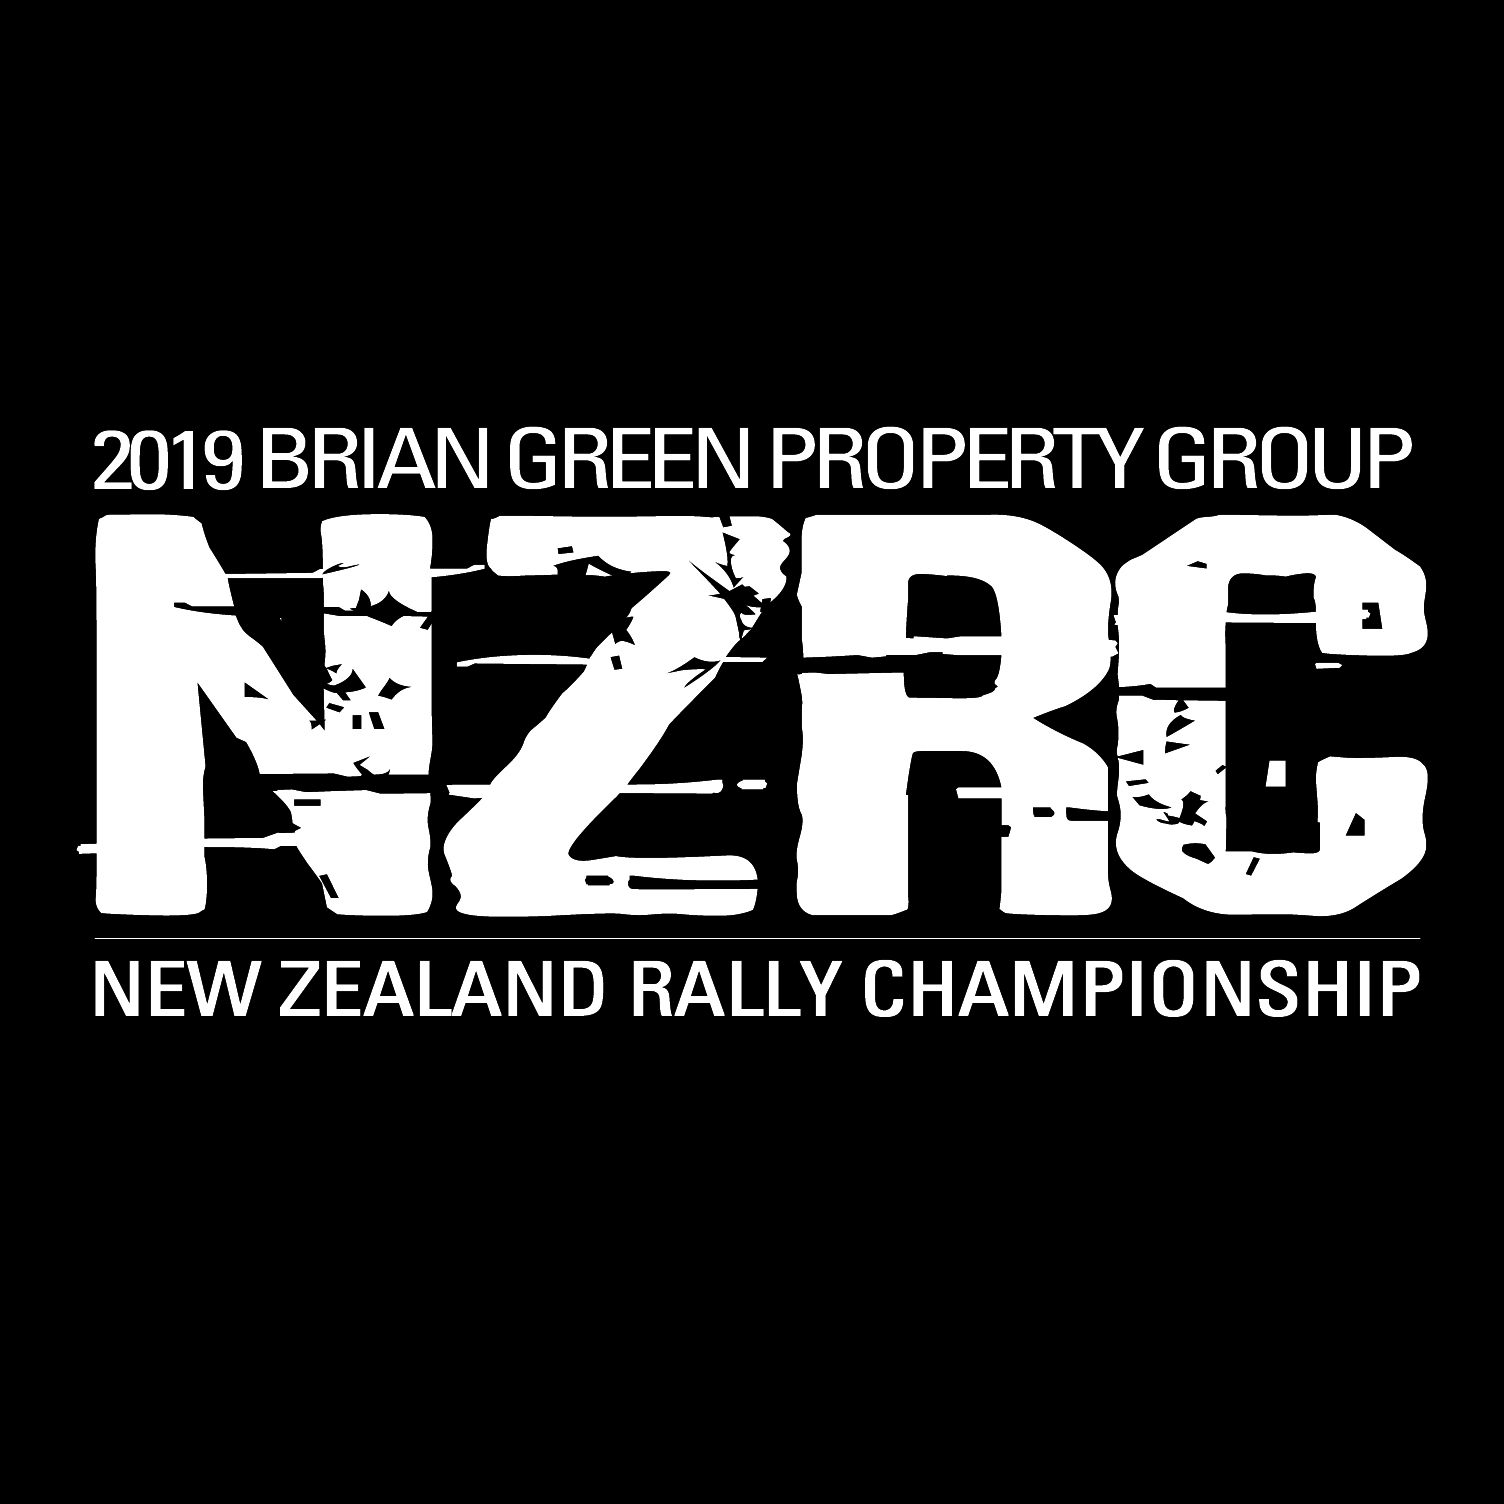 Hunt storms home to win in Otago | :: Brian Green Property Group New Zealand Rally Championship ::